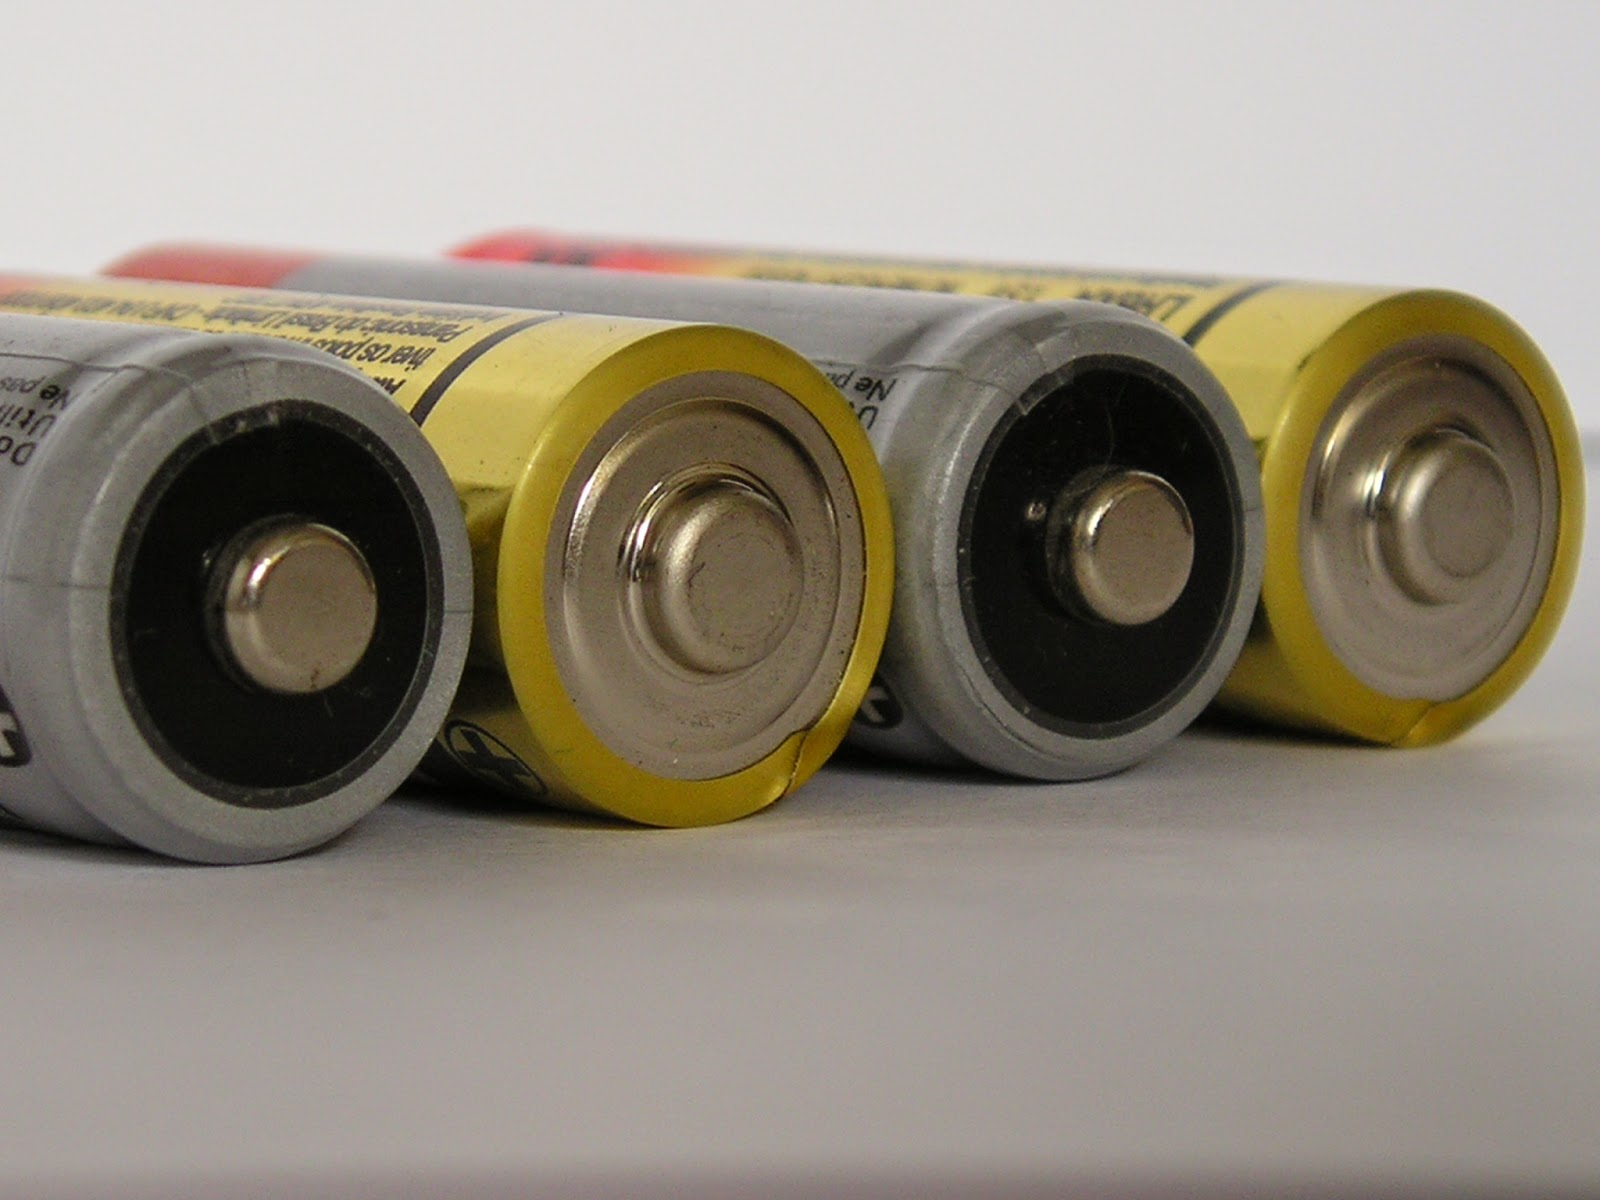 Change The World Wednesday (#CTWW) - Reusable Batteries